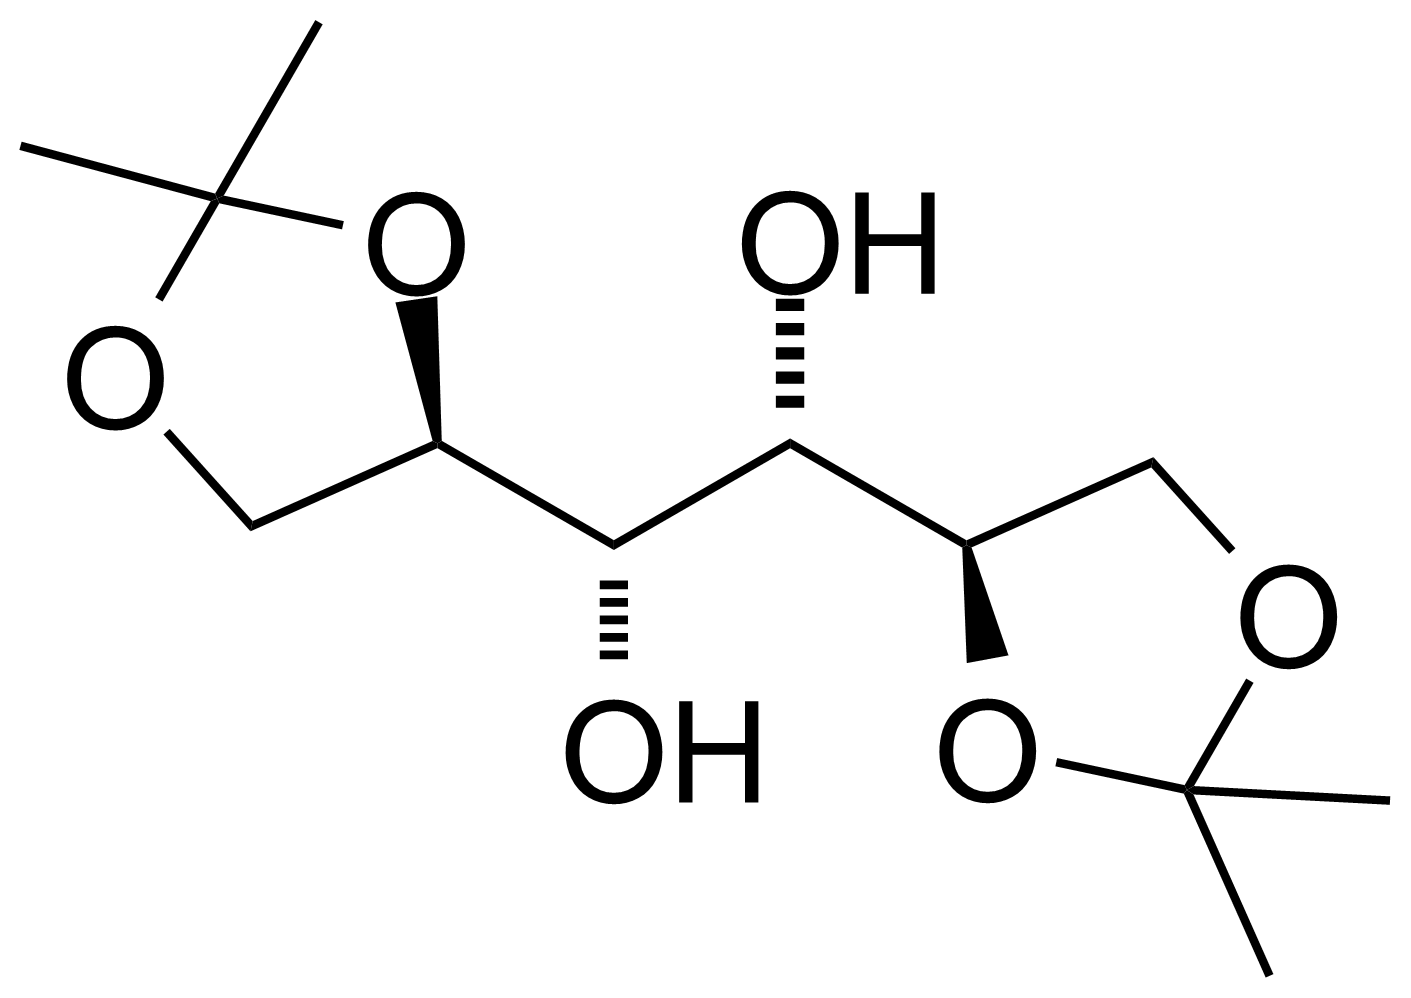 Structure of 1,2-5,6-Di-O-isopropylidene-D-mannitol